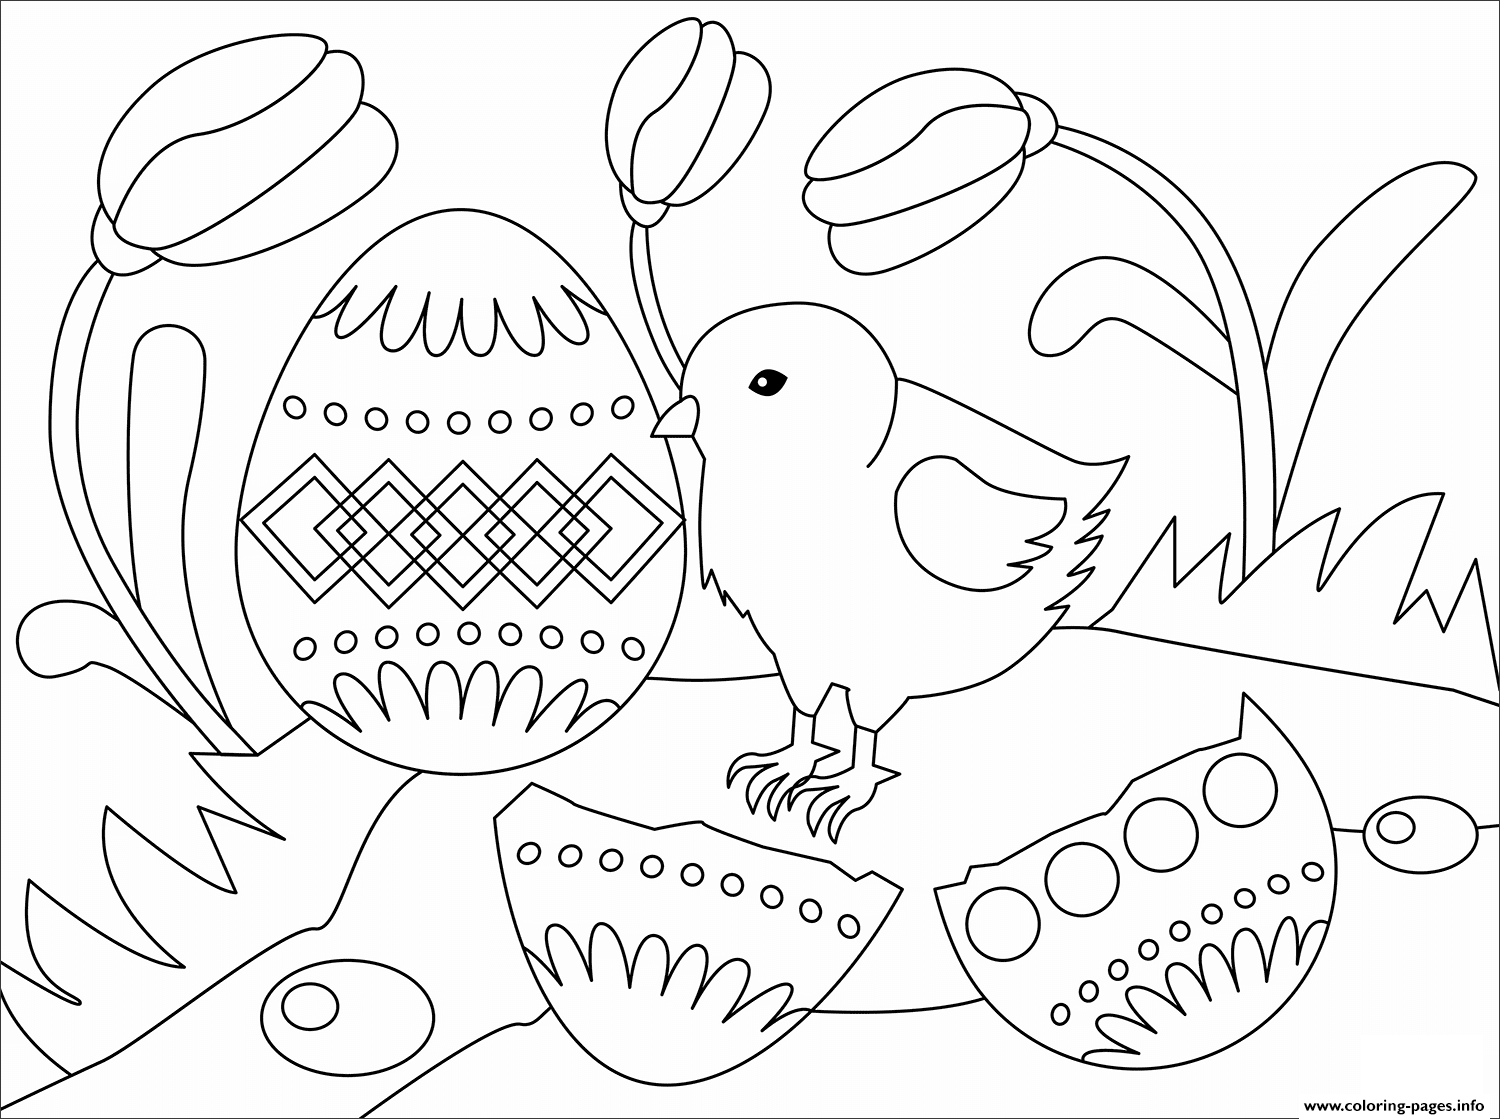 Easter Chick Animal Simple Coloring Pages Printable